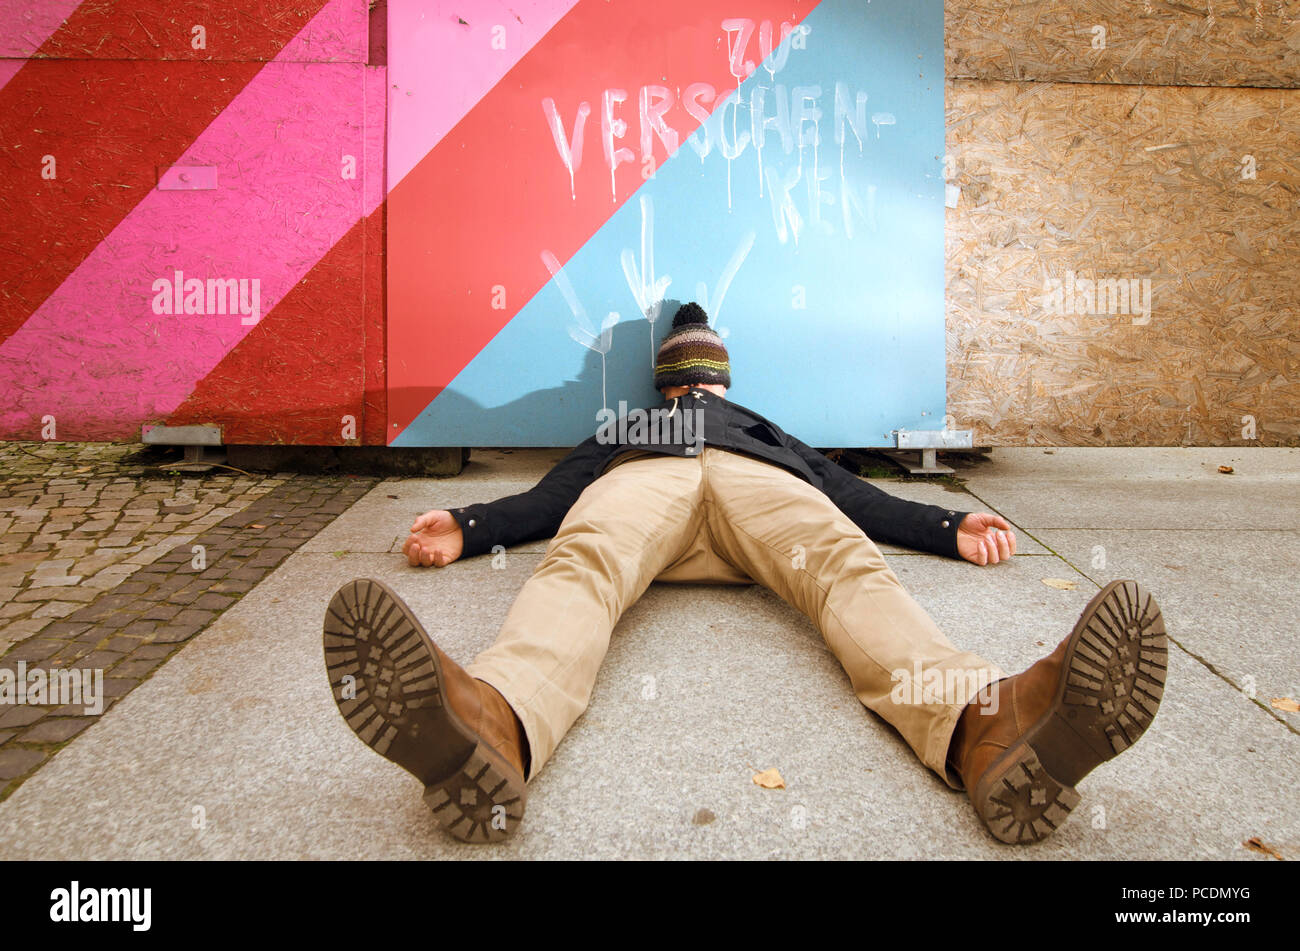 man,drunk,hungover - Stock Image